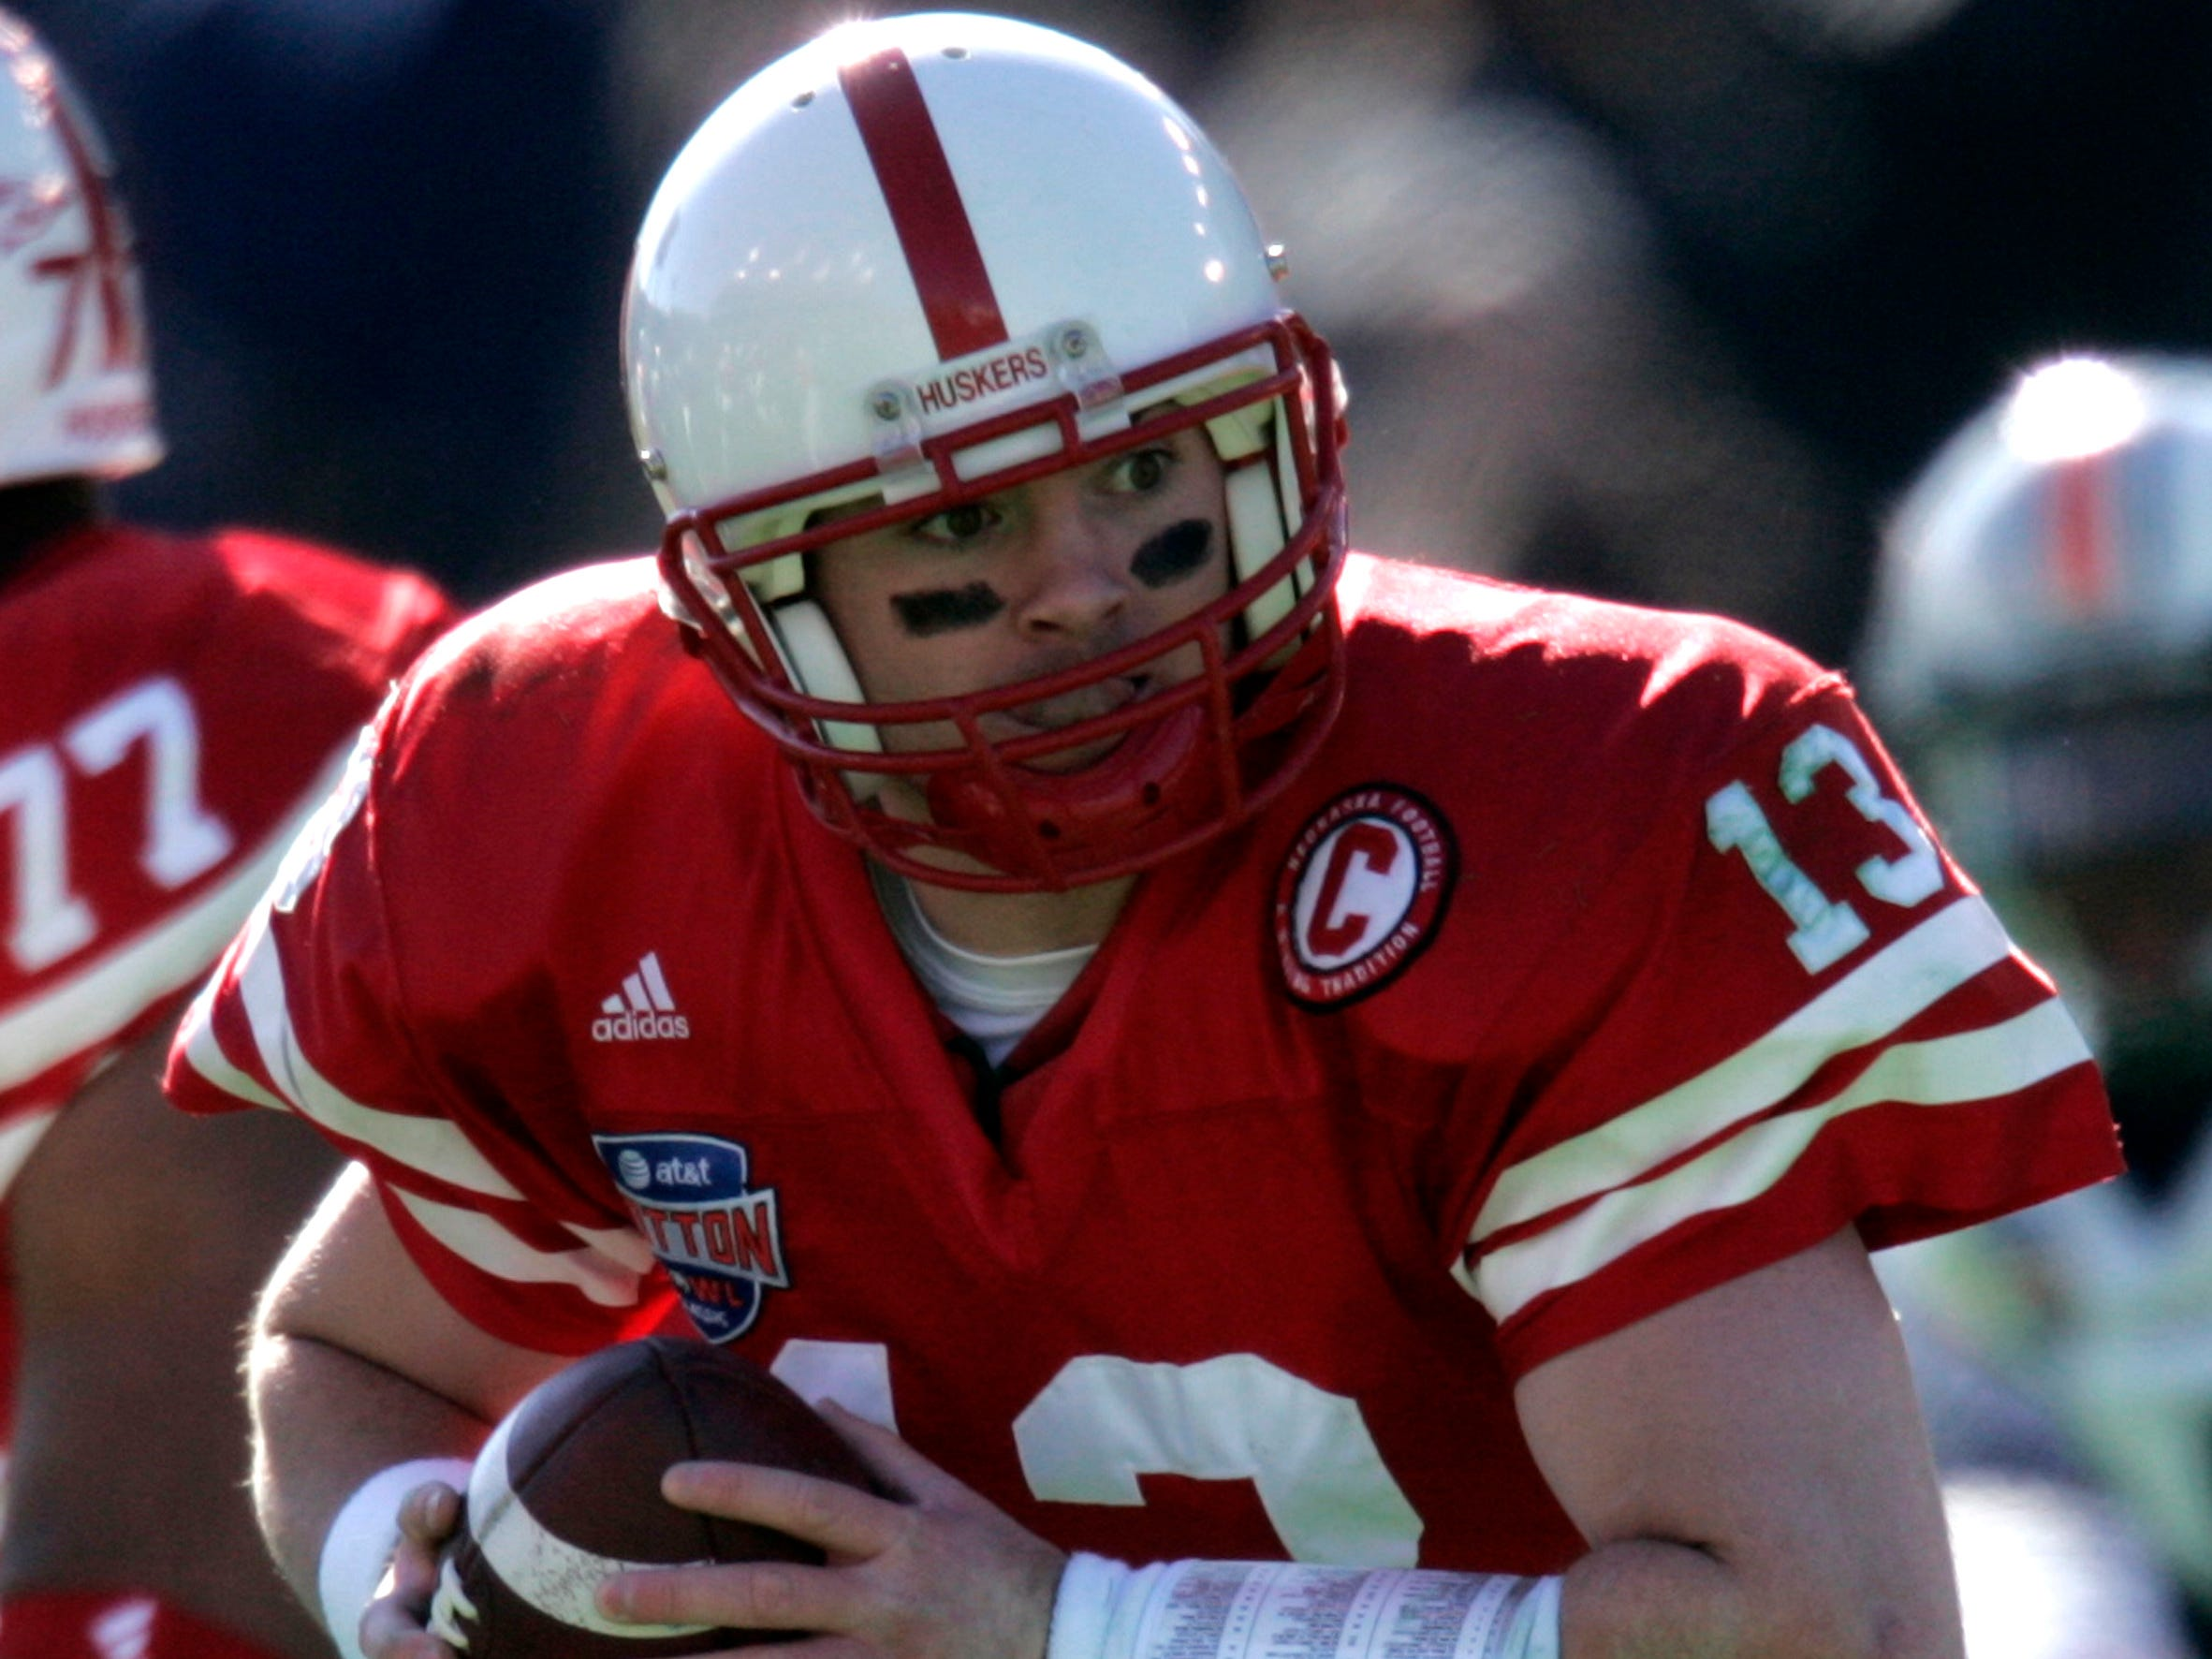 Nebraska quarterback Zac Taylor (13) fades back with the ball in the first quarter against Auburn in the Cotton Bowl college football game in Dallas, Monday, Jan. 1, 2007.